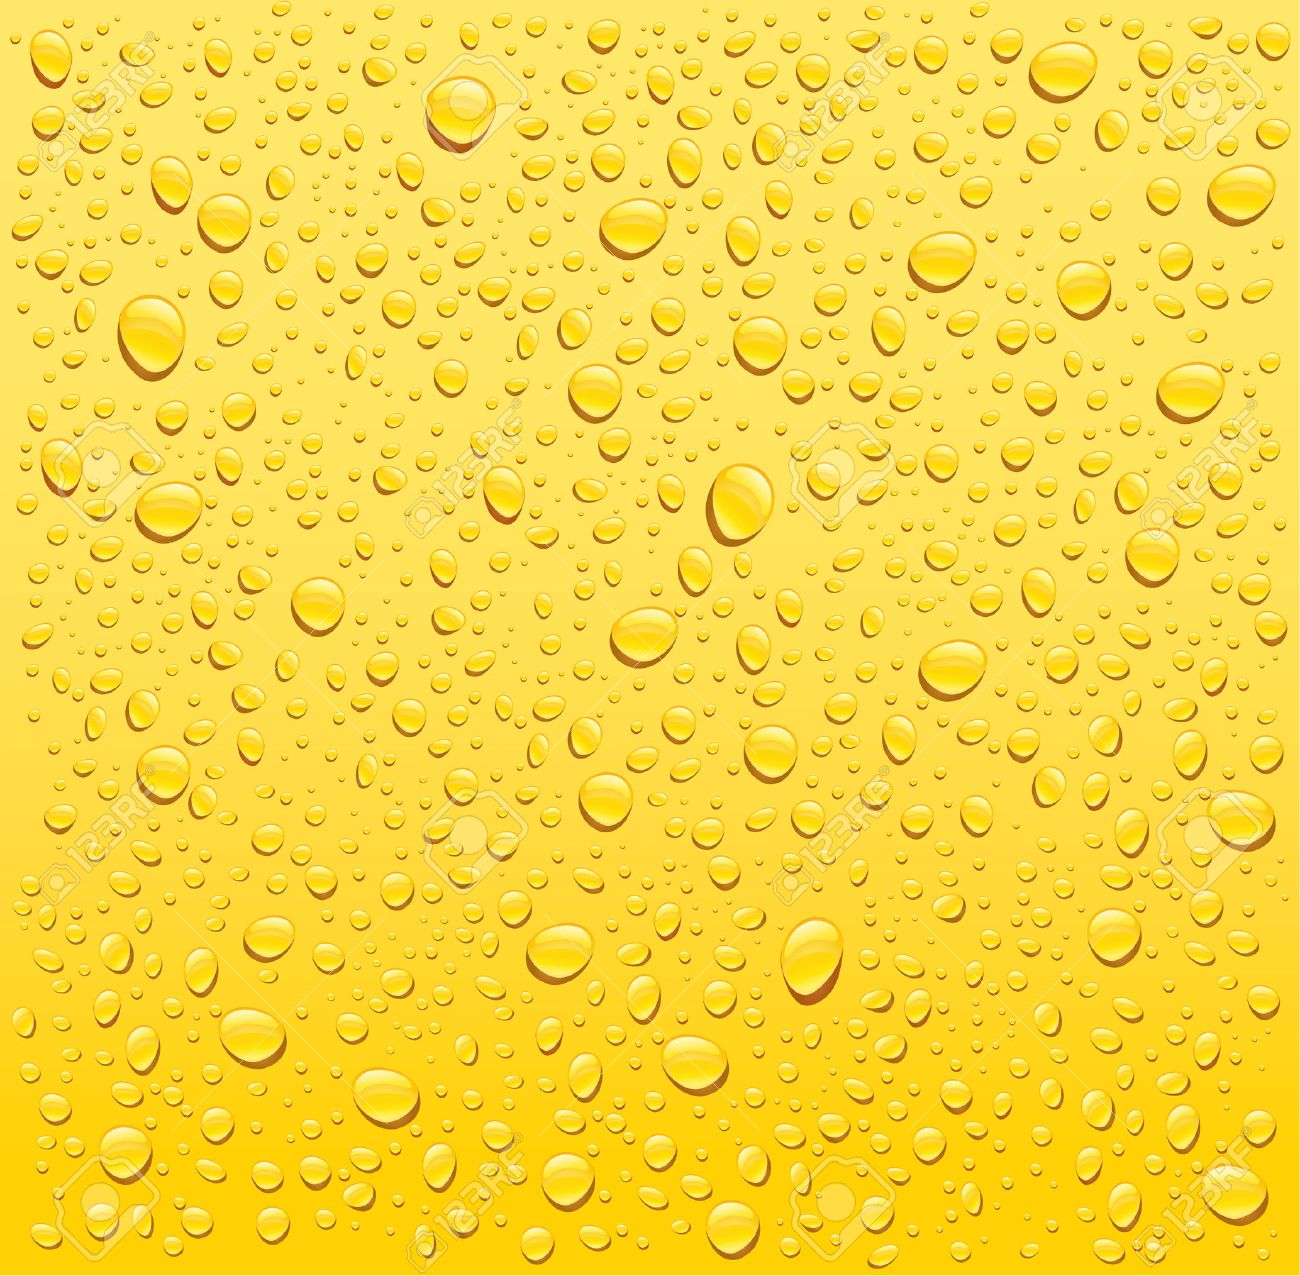 hight resolution of vector yellow water drops background